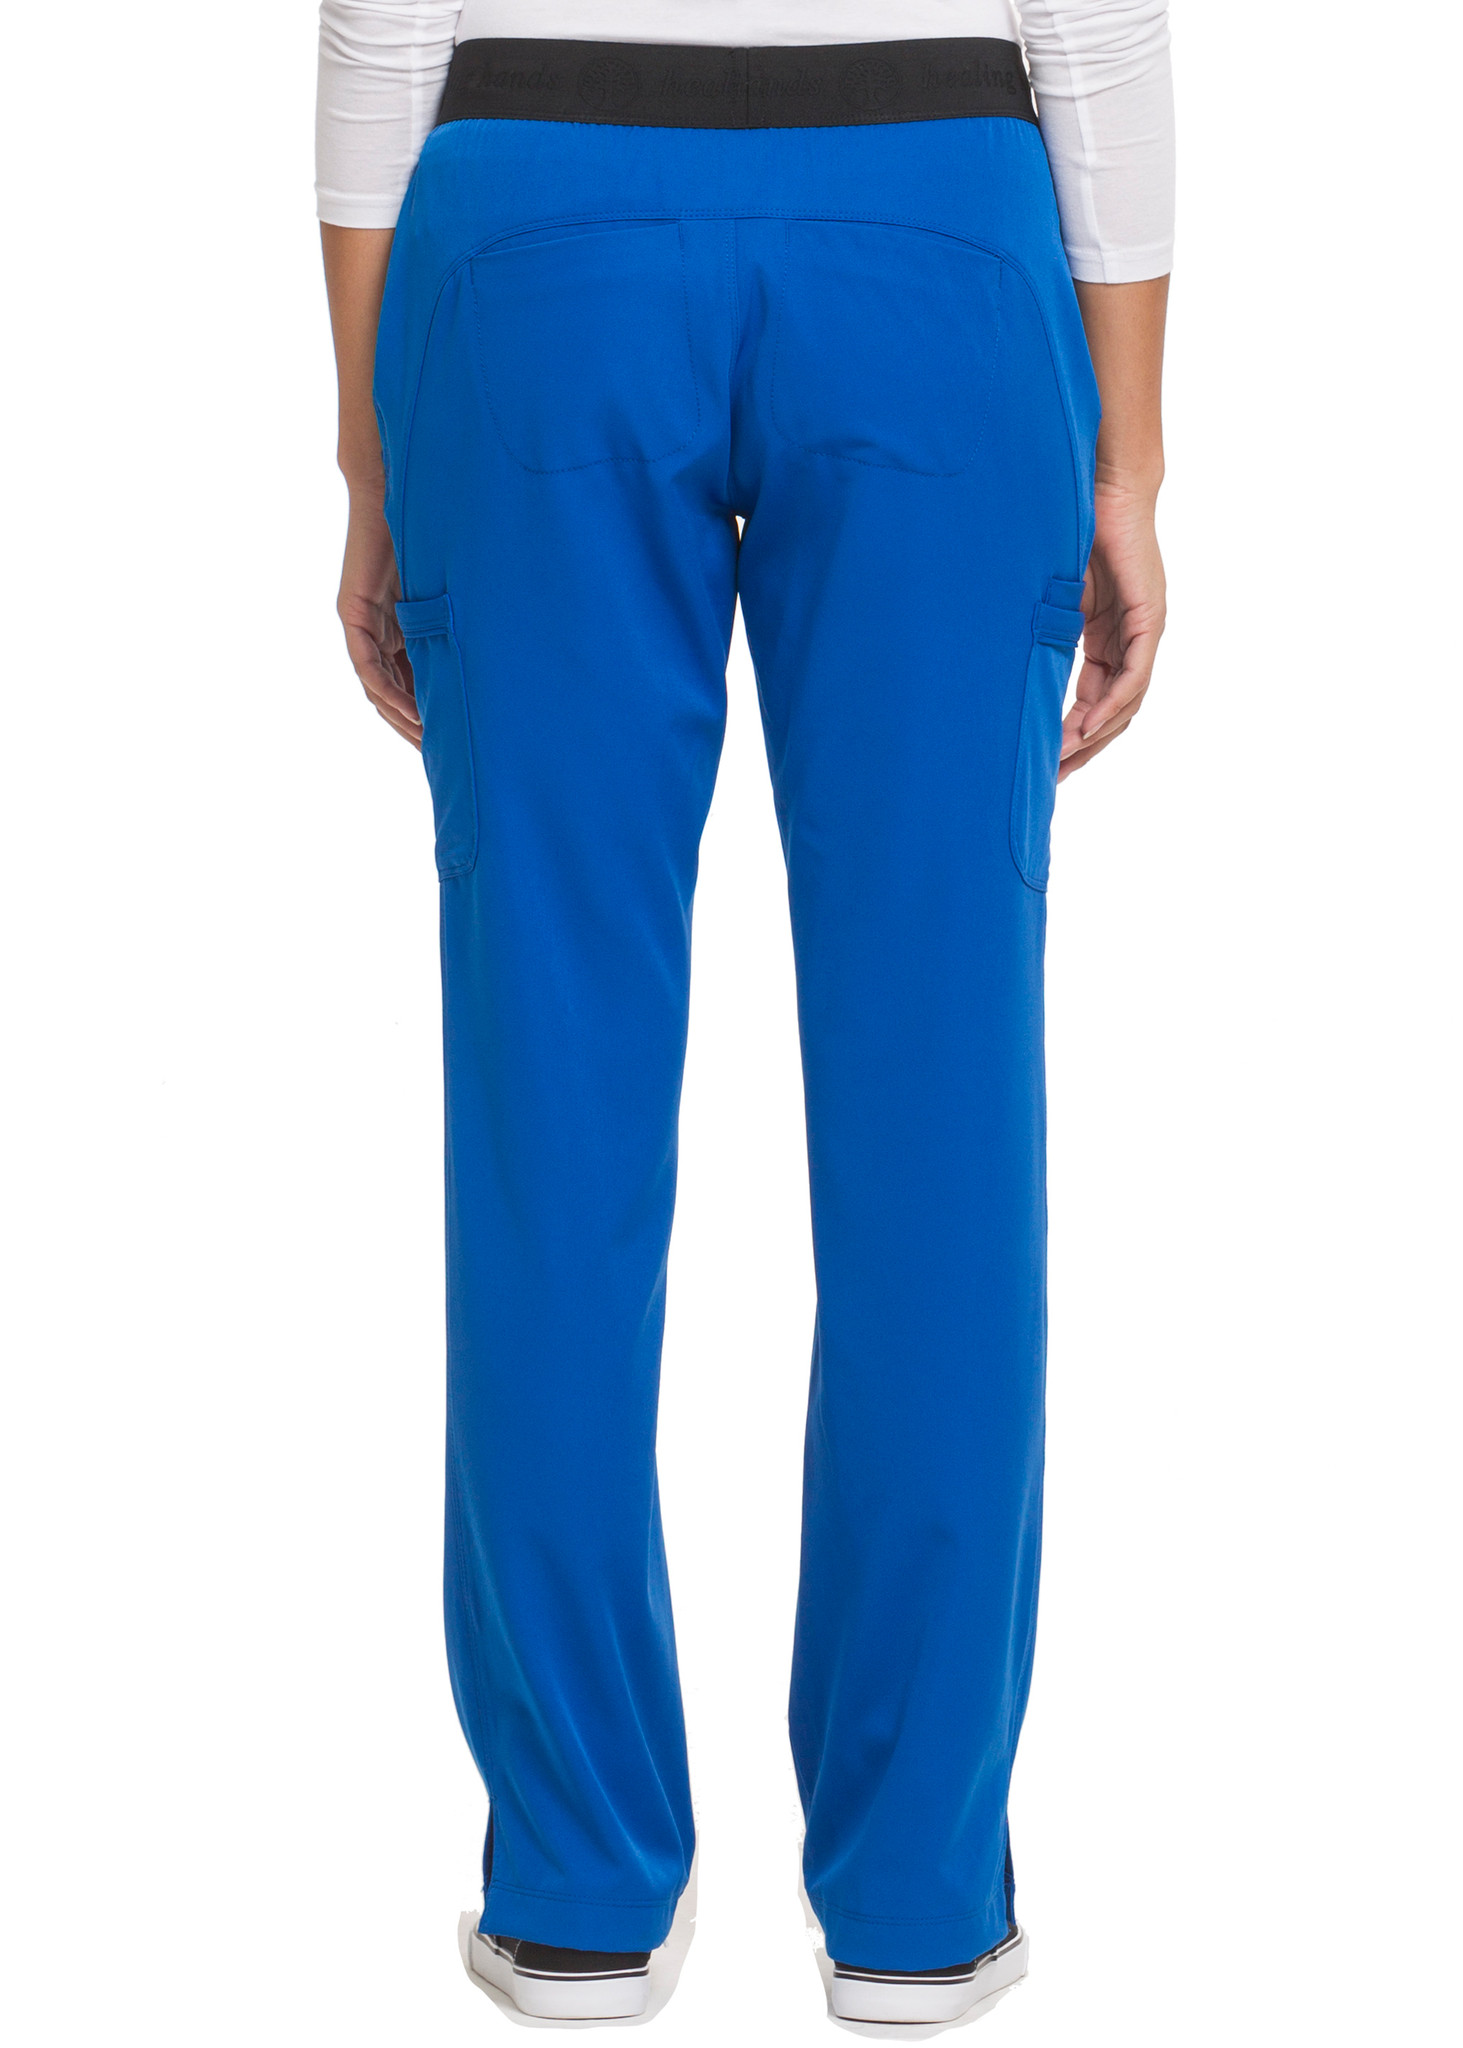 Healing Hands HH Works 9500 Rachel Women's Scrub Pant with 6 pockets including double cargo pockets and double back pockets, elastic waist, straight leg, and four way spandex stretch. Model image back.